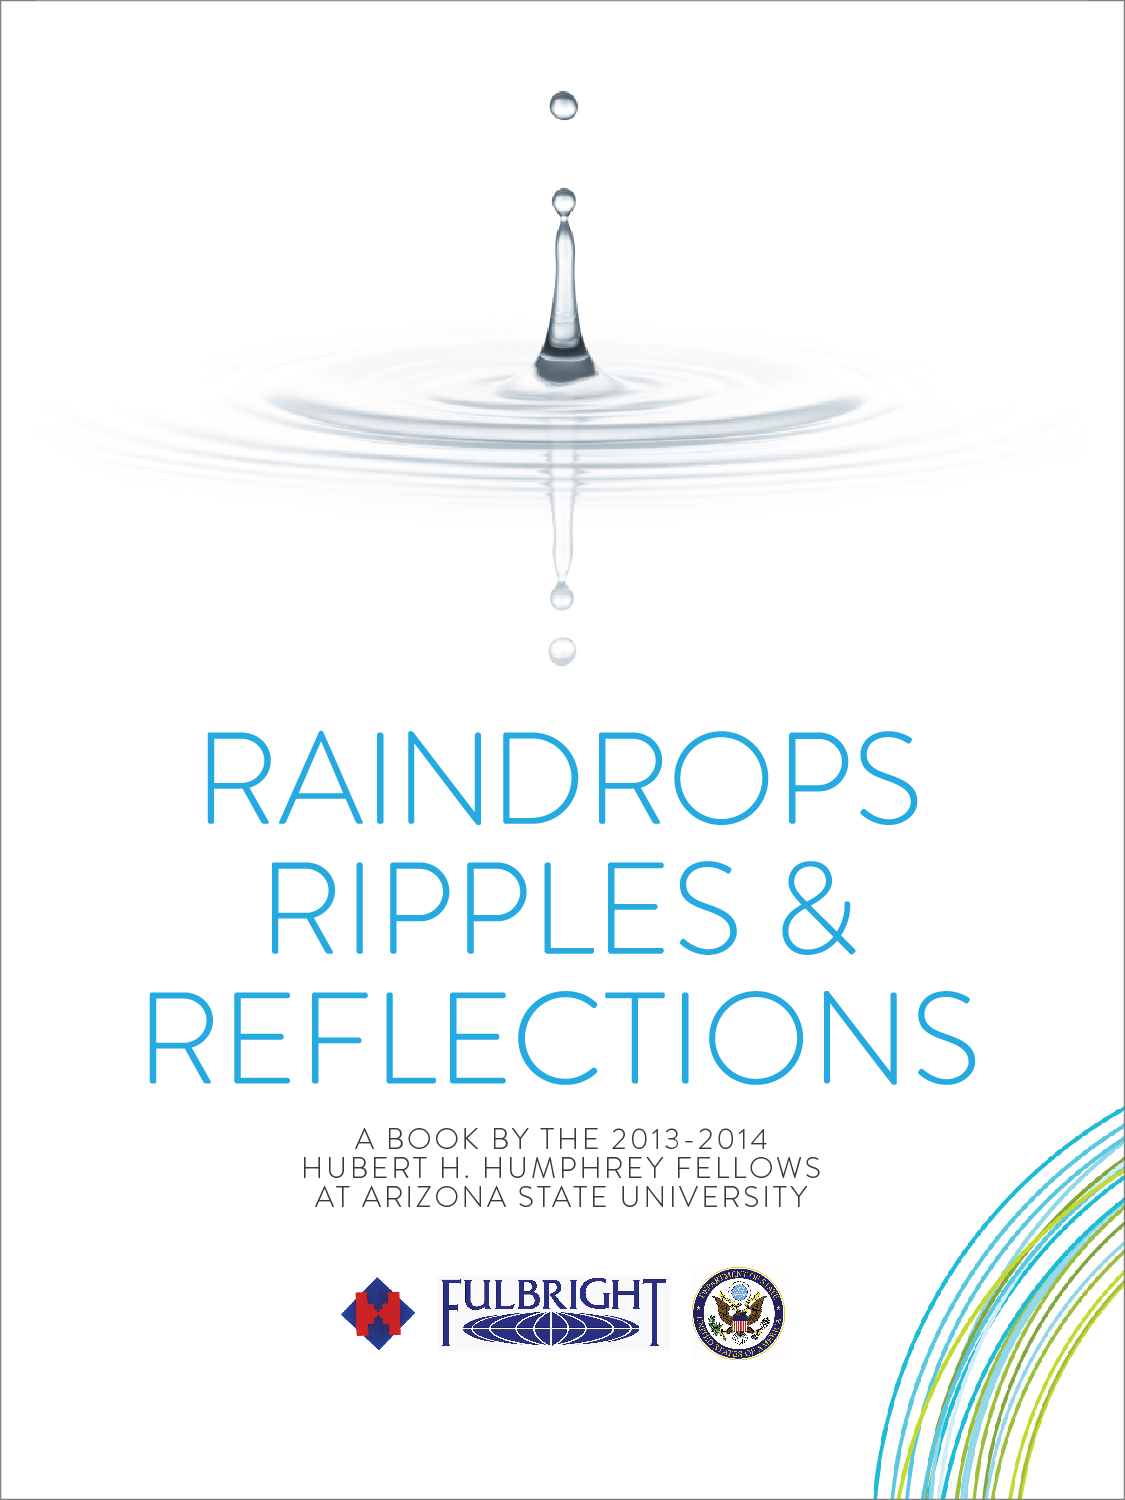 Cover image for Raindrops Ripples & Reflections